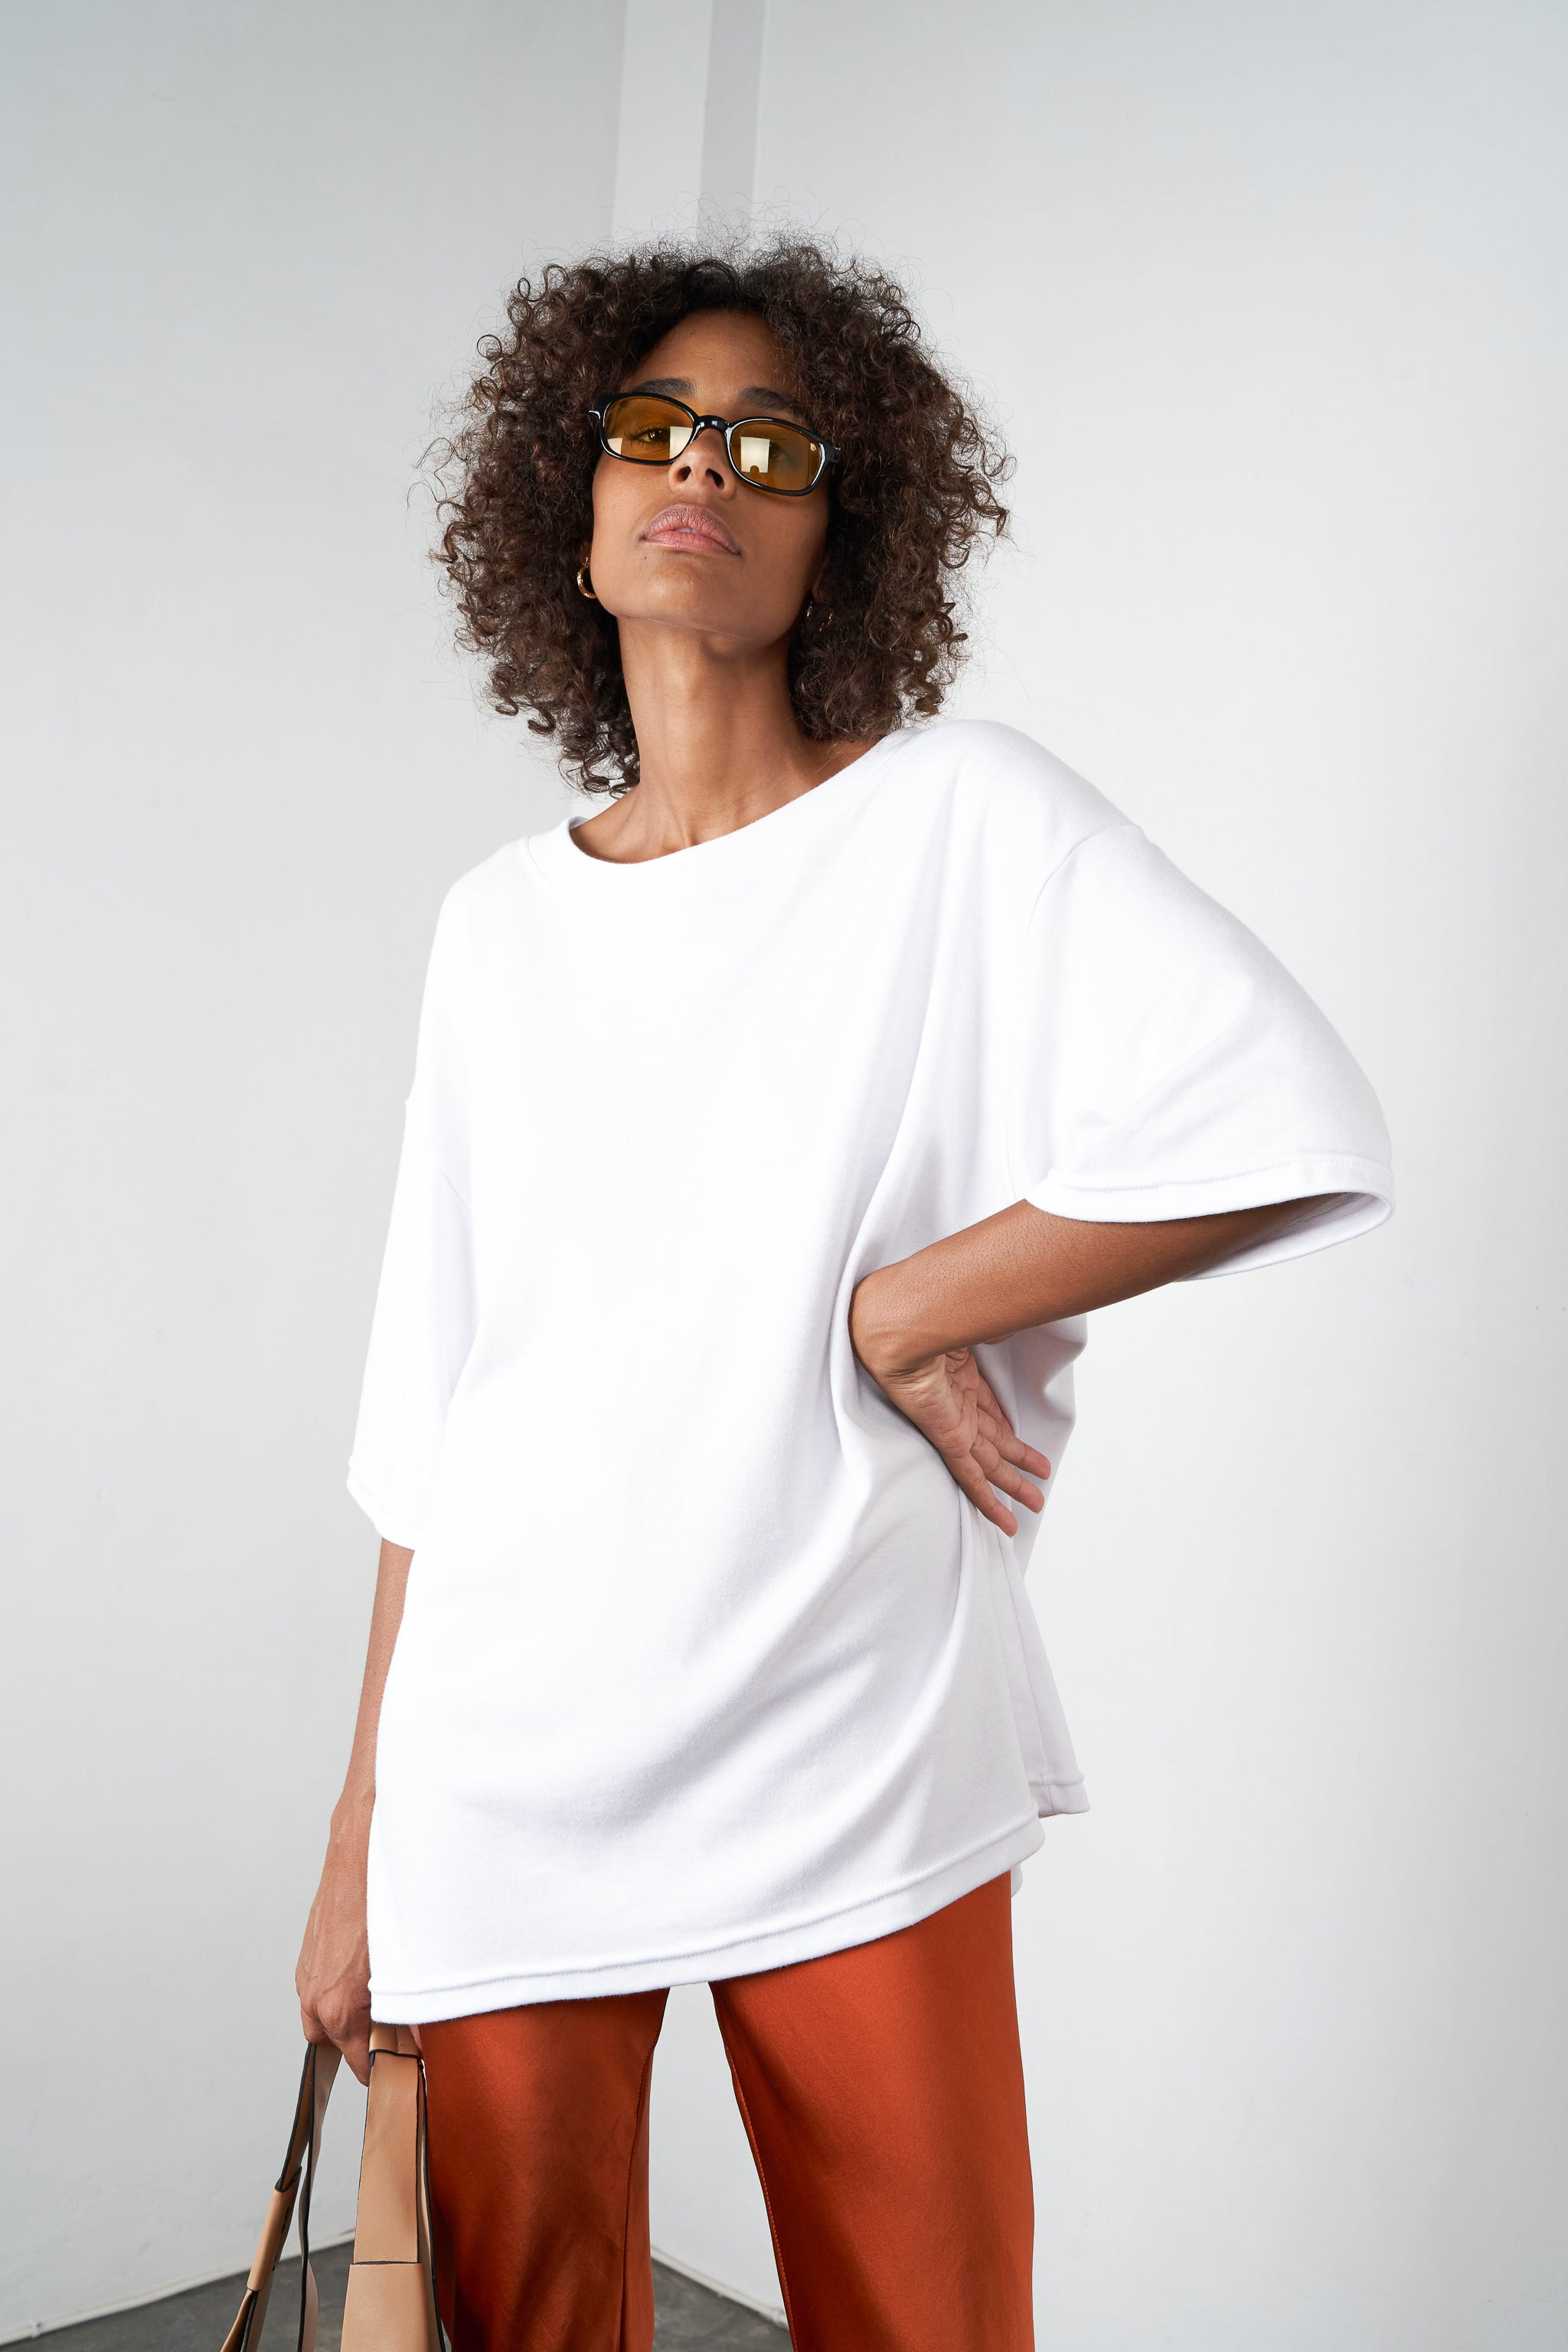 Arthur Apparel AW20 Womenswear Australian Fashion Cotton Oversized Tshirt White